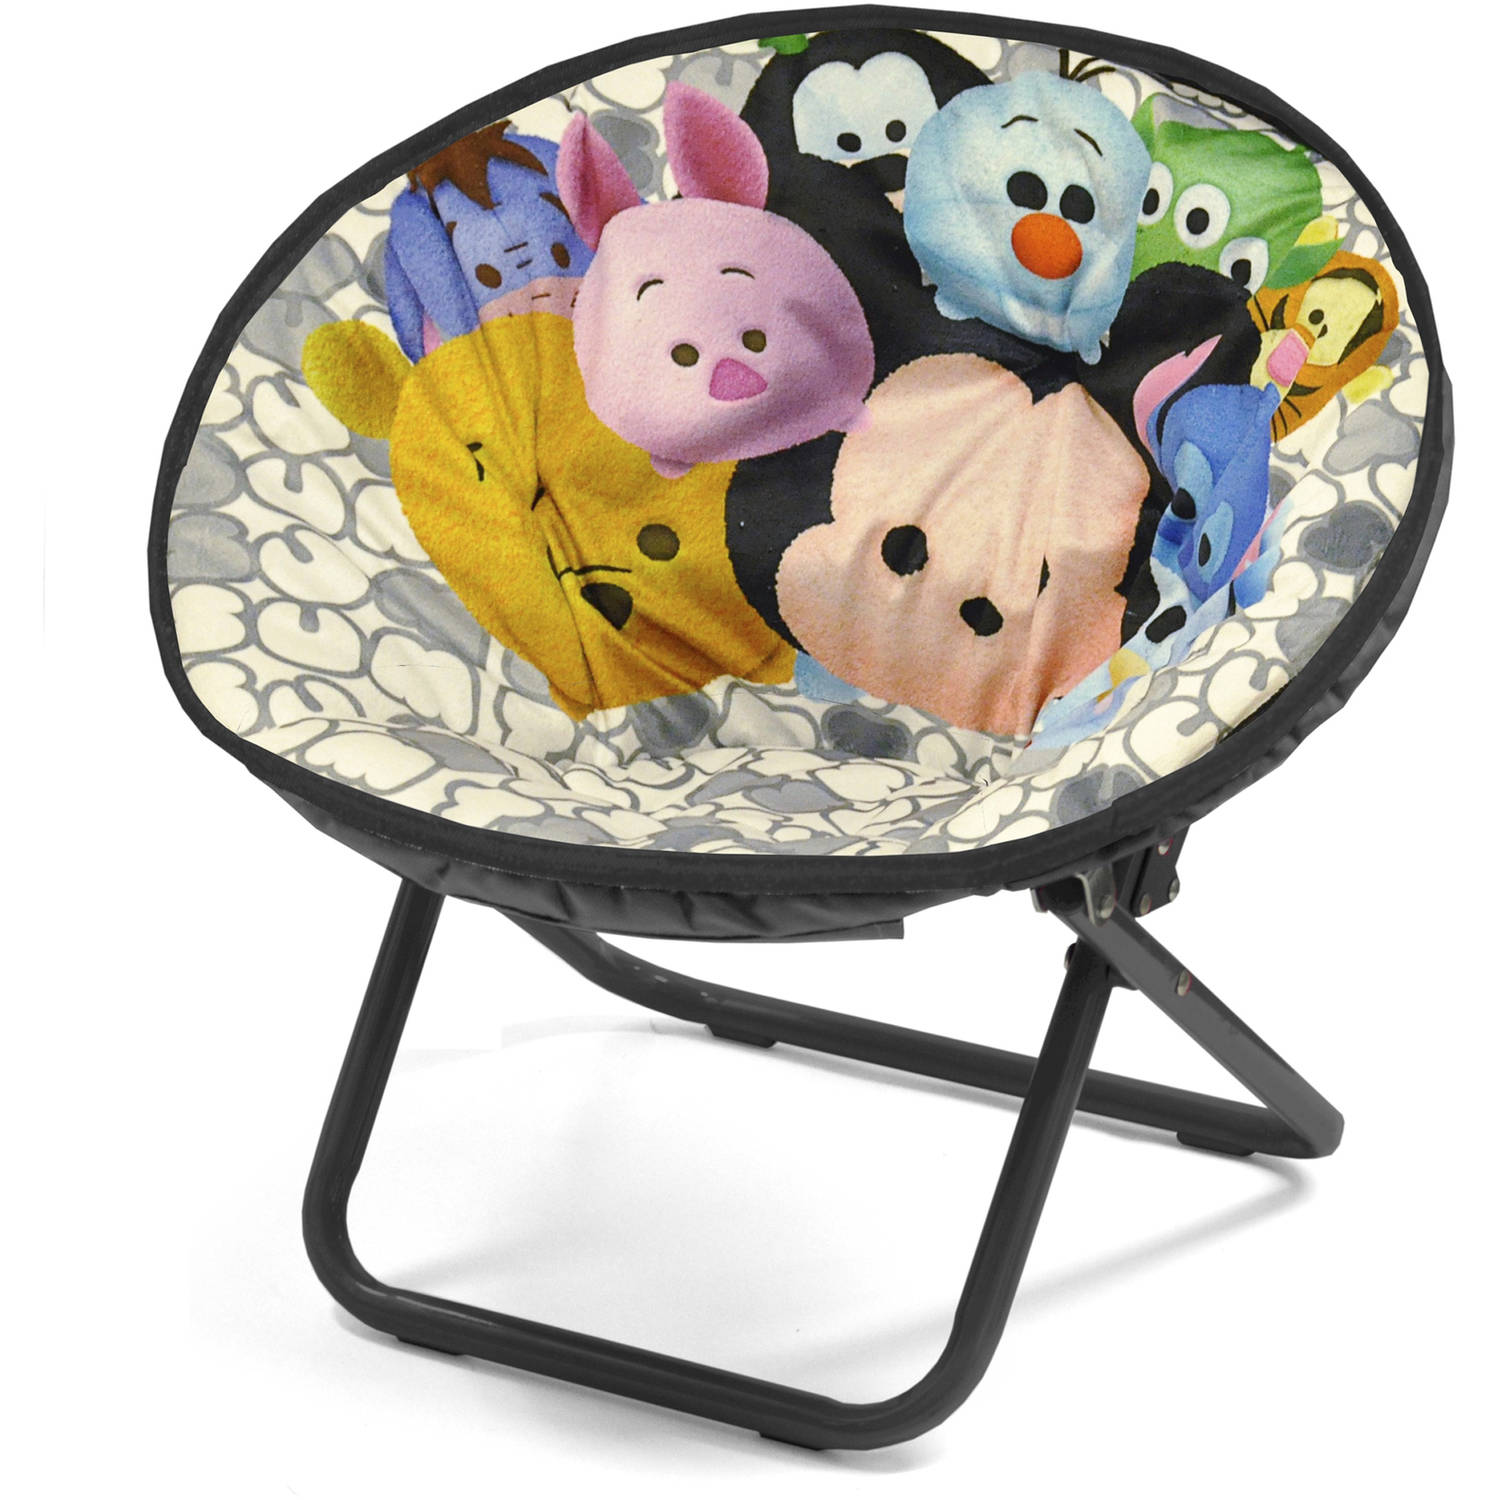 Tsum Tsum Mini Saucer Chair